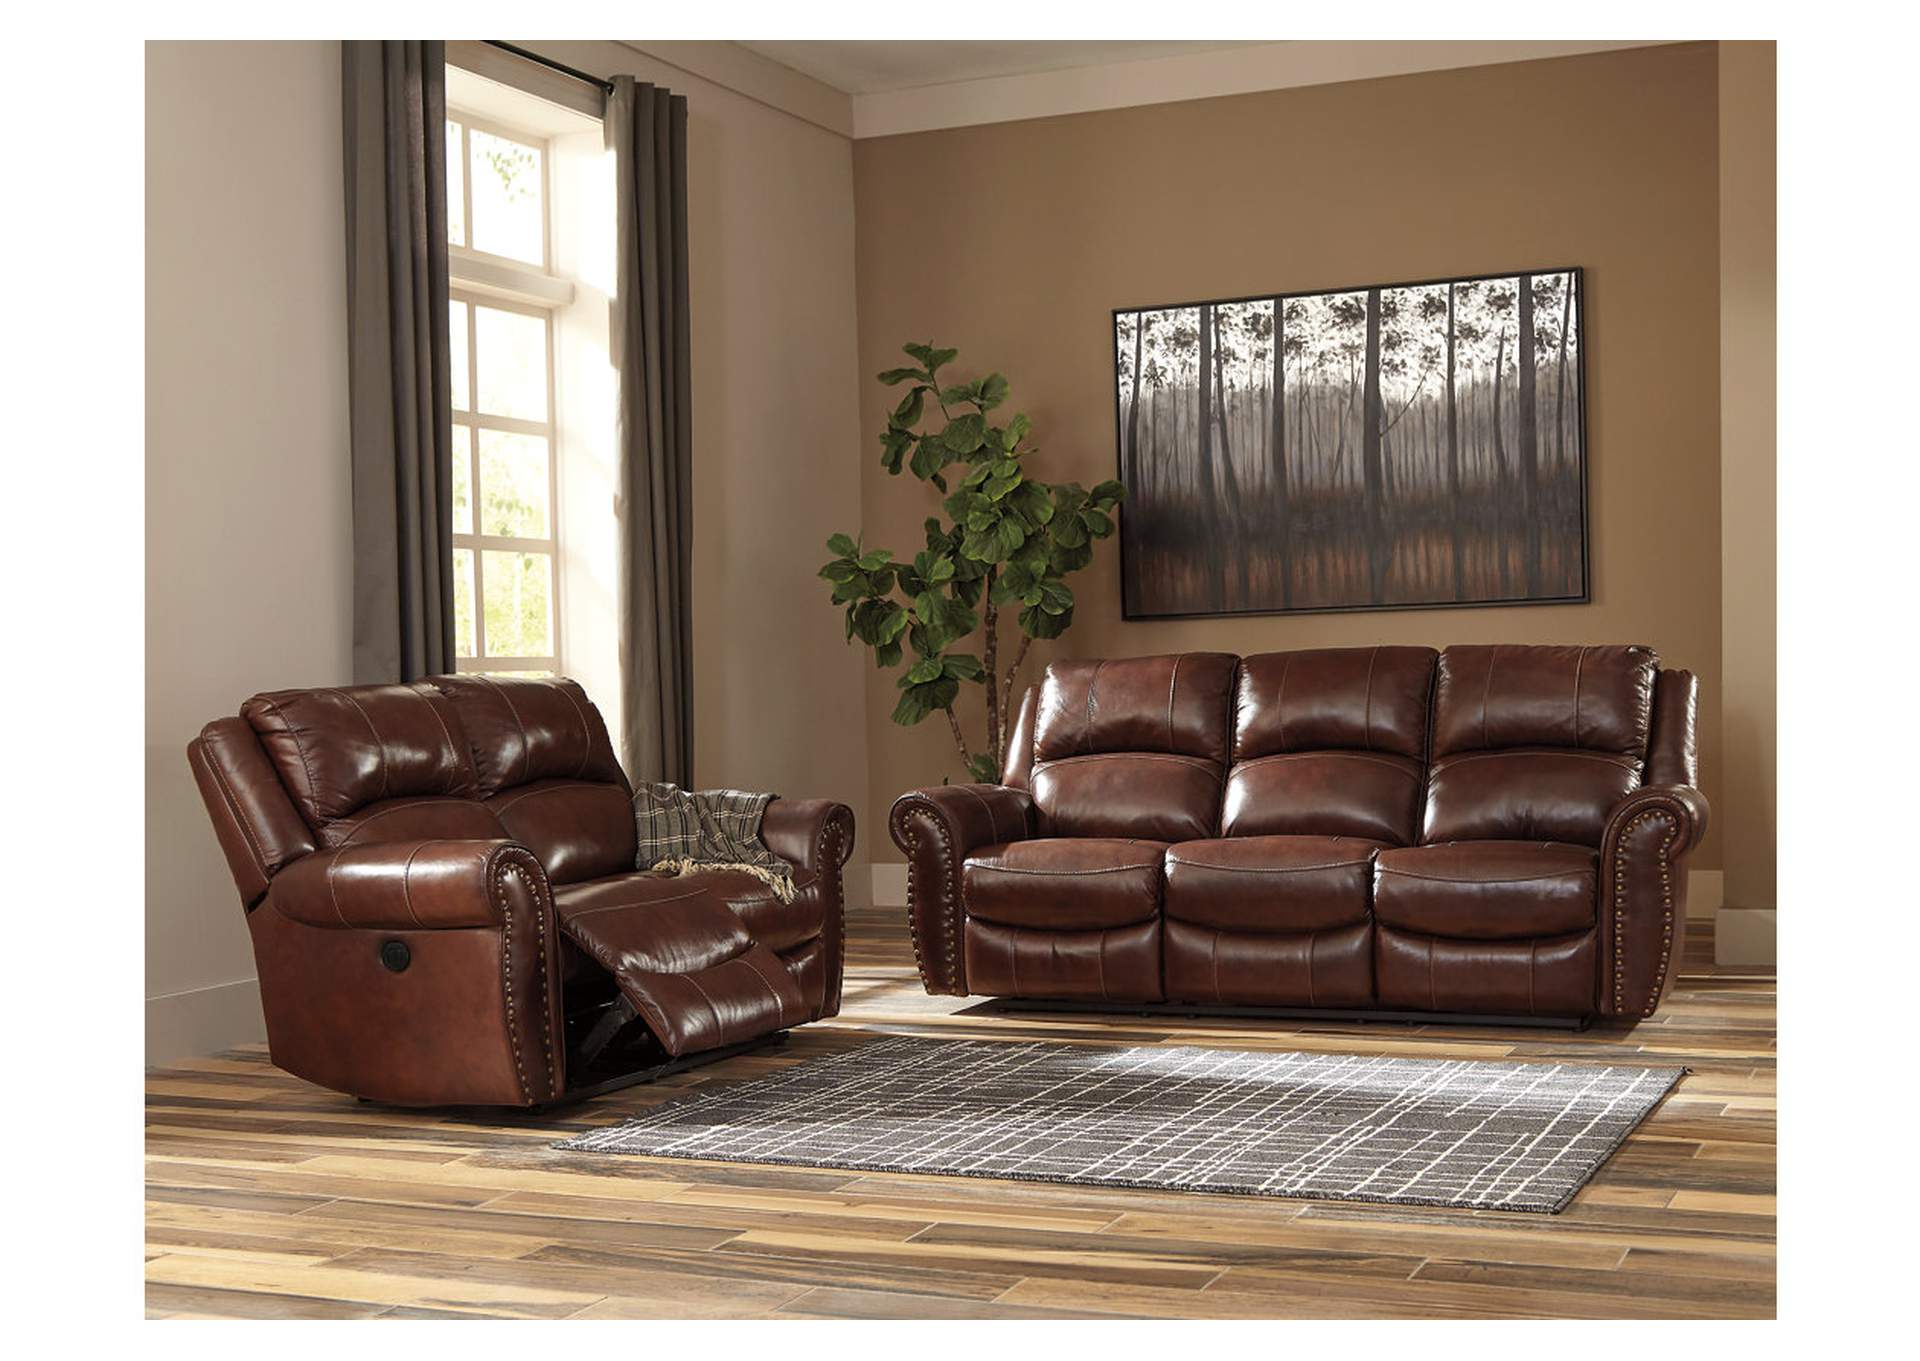 Bingen Harness Power Reclining Sofa,Signature Design By Ashley